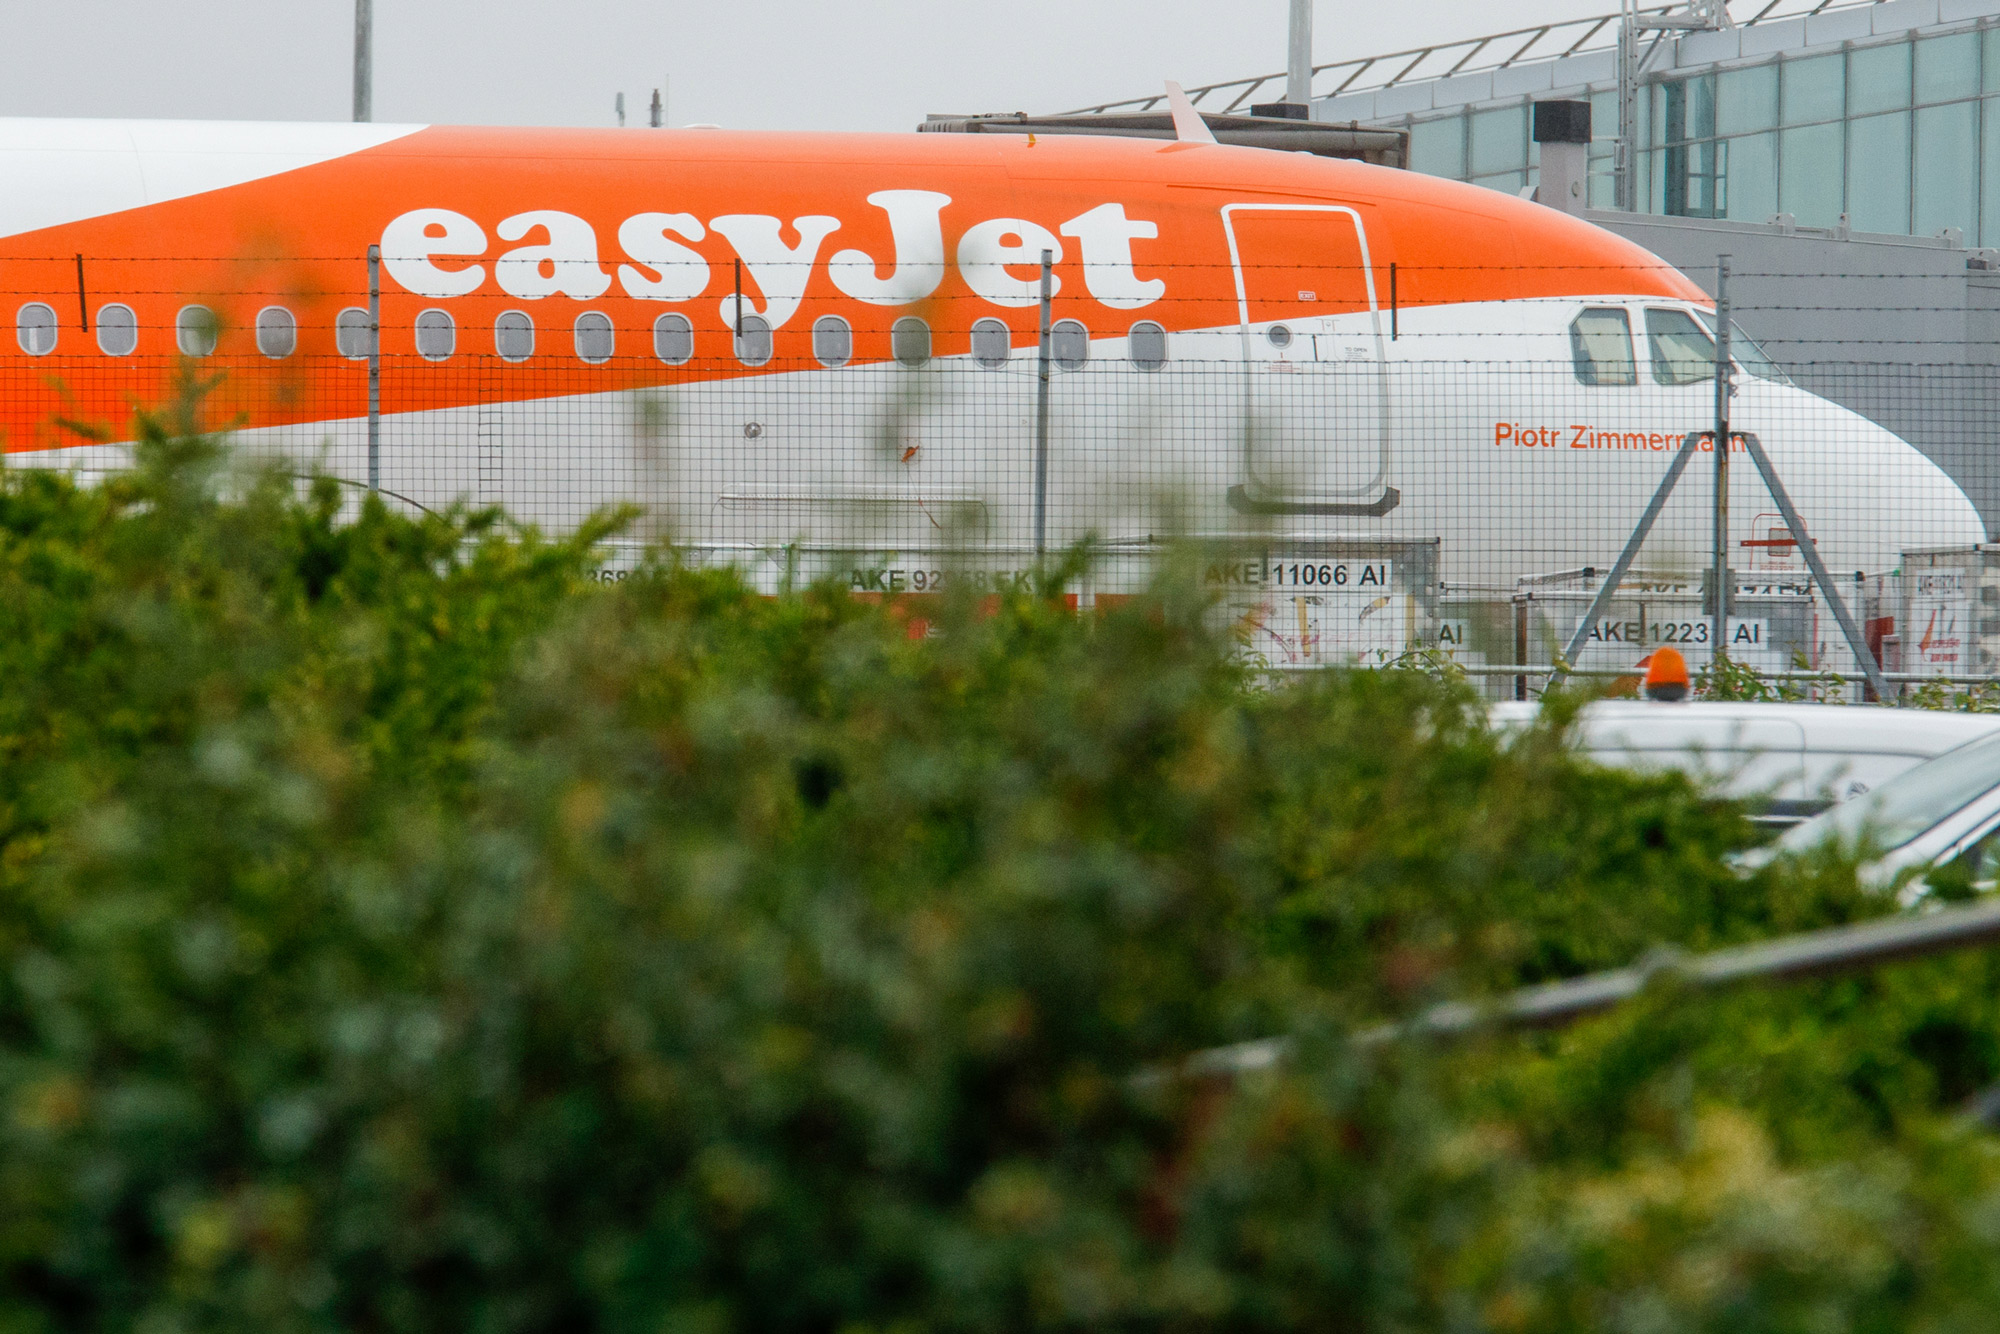 An aircraft, operated by EasyJet Plc, sits grounded on the tarmac at London Stansted Airport in Stansted, U.K., on July 9.